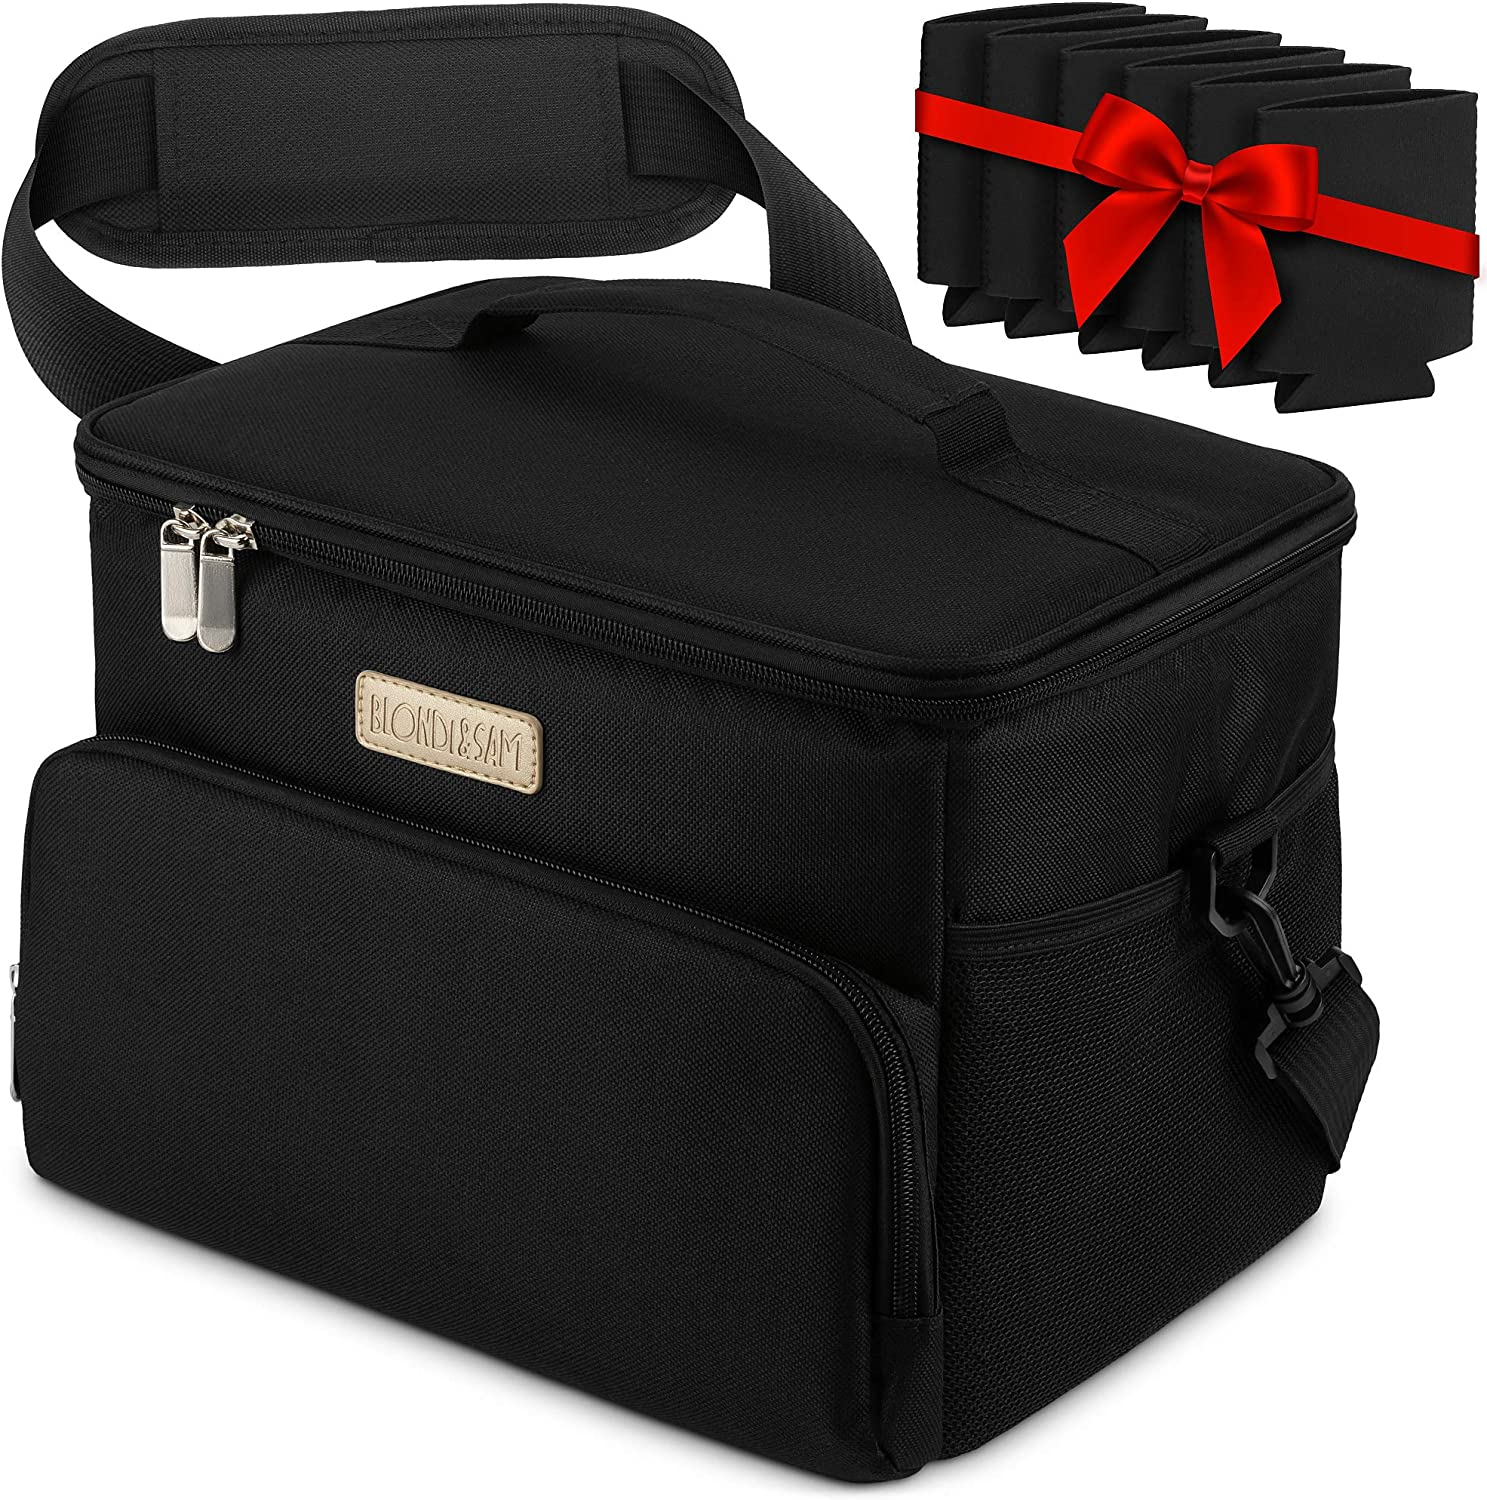 Insulated Cooler Bag with Zipper Closure, Shoulder Strap, 6 Drink Sleeves – Leak- and Water-Proof Collapsible Lunch Bag with Interior and Exterior Pockets by BLONDI&SAM, Black, 11x8.3x9 In.